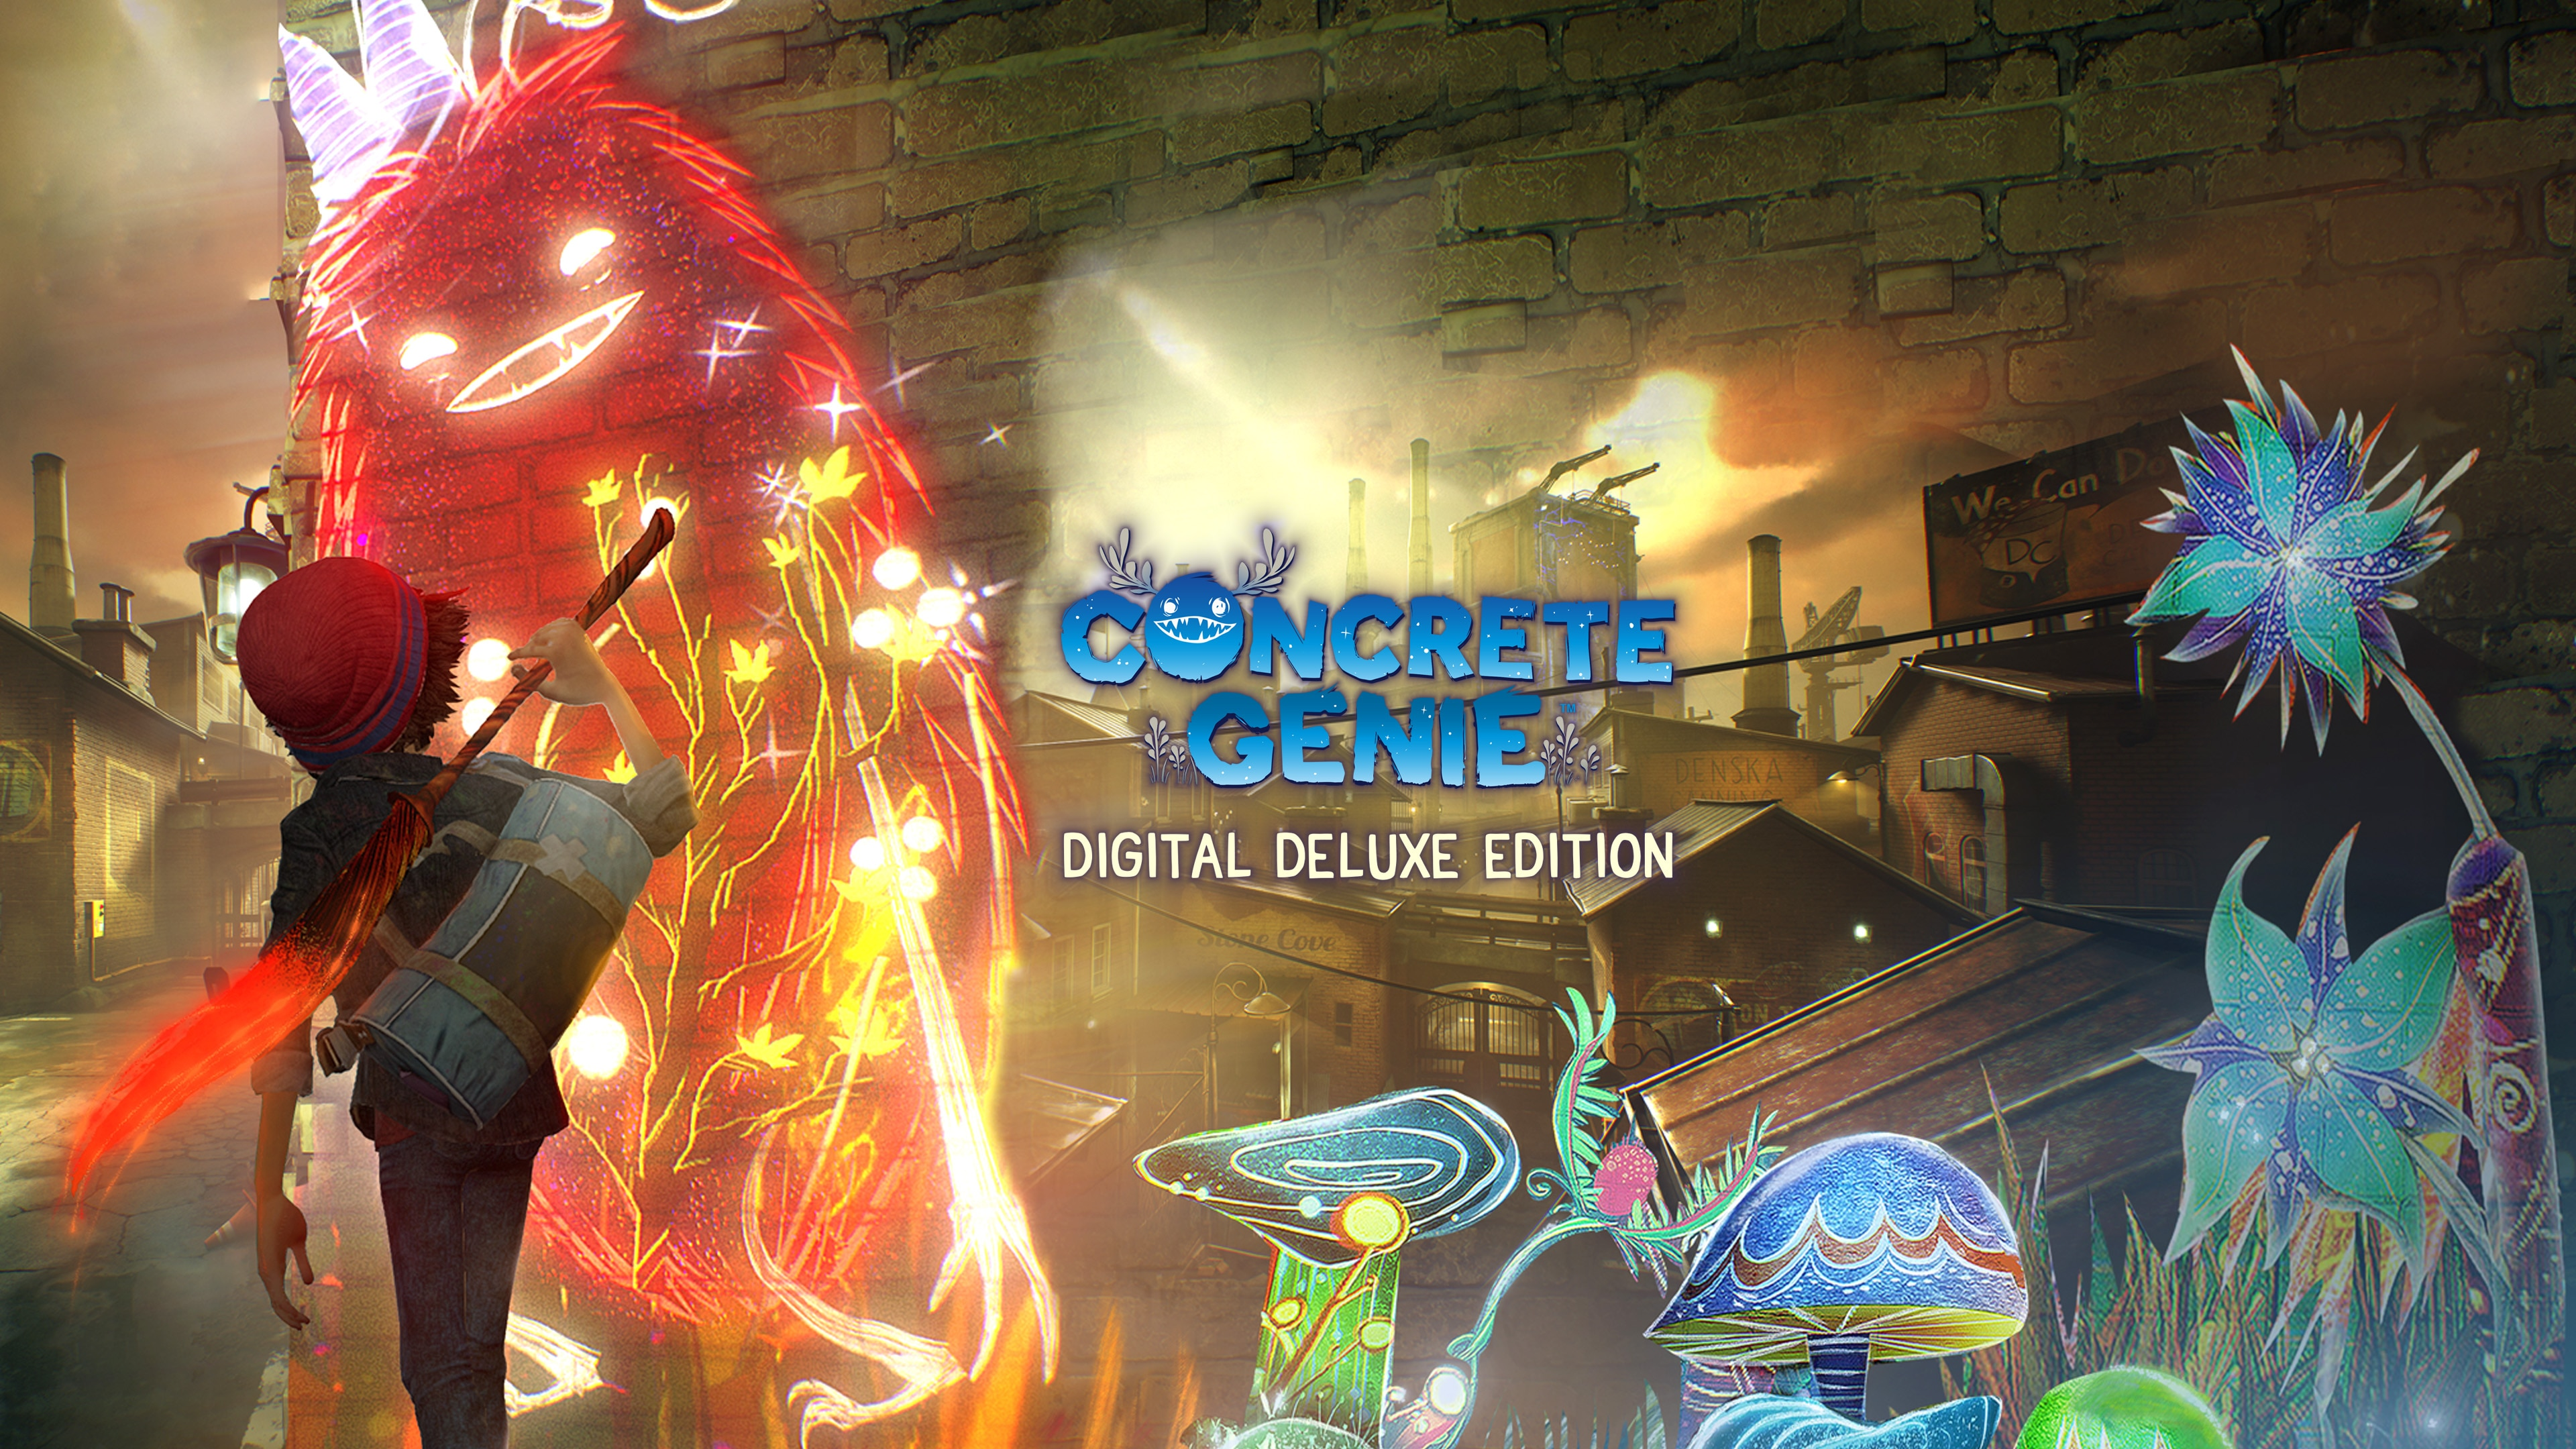 Concrete Genie Digital Deluxe Edition (English, Korean, Thai, Traditional Chinese)